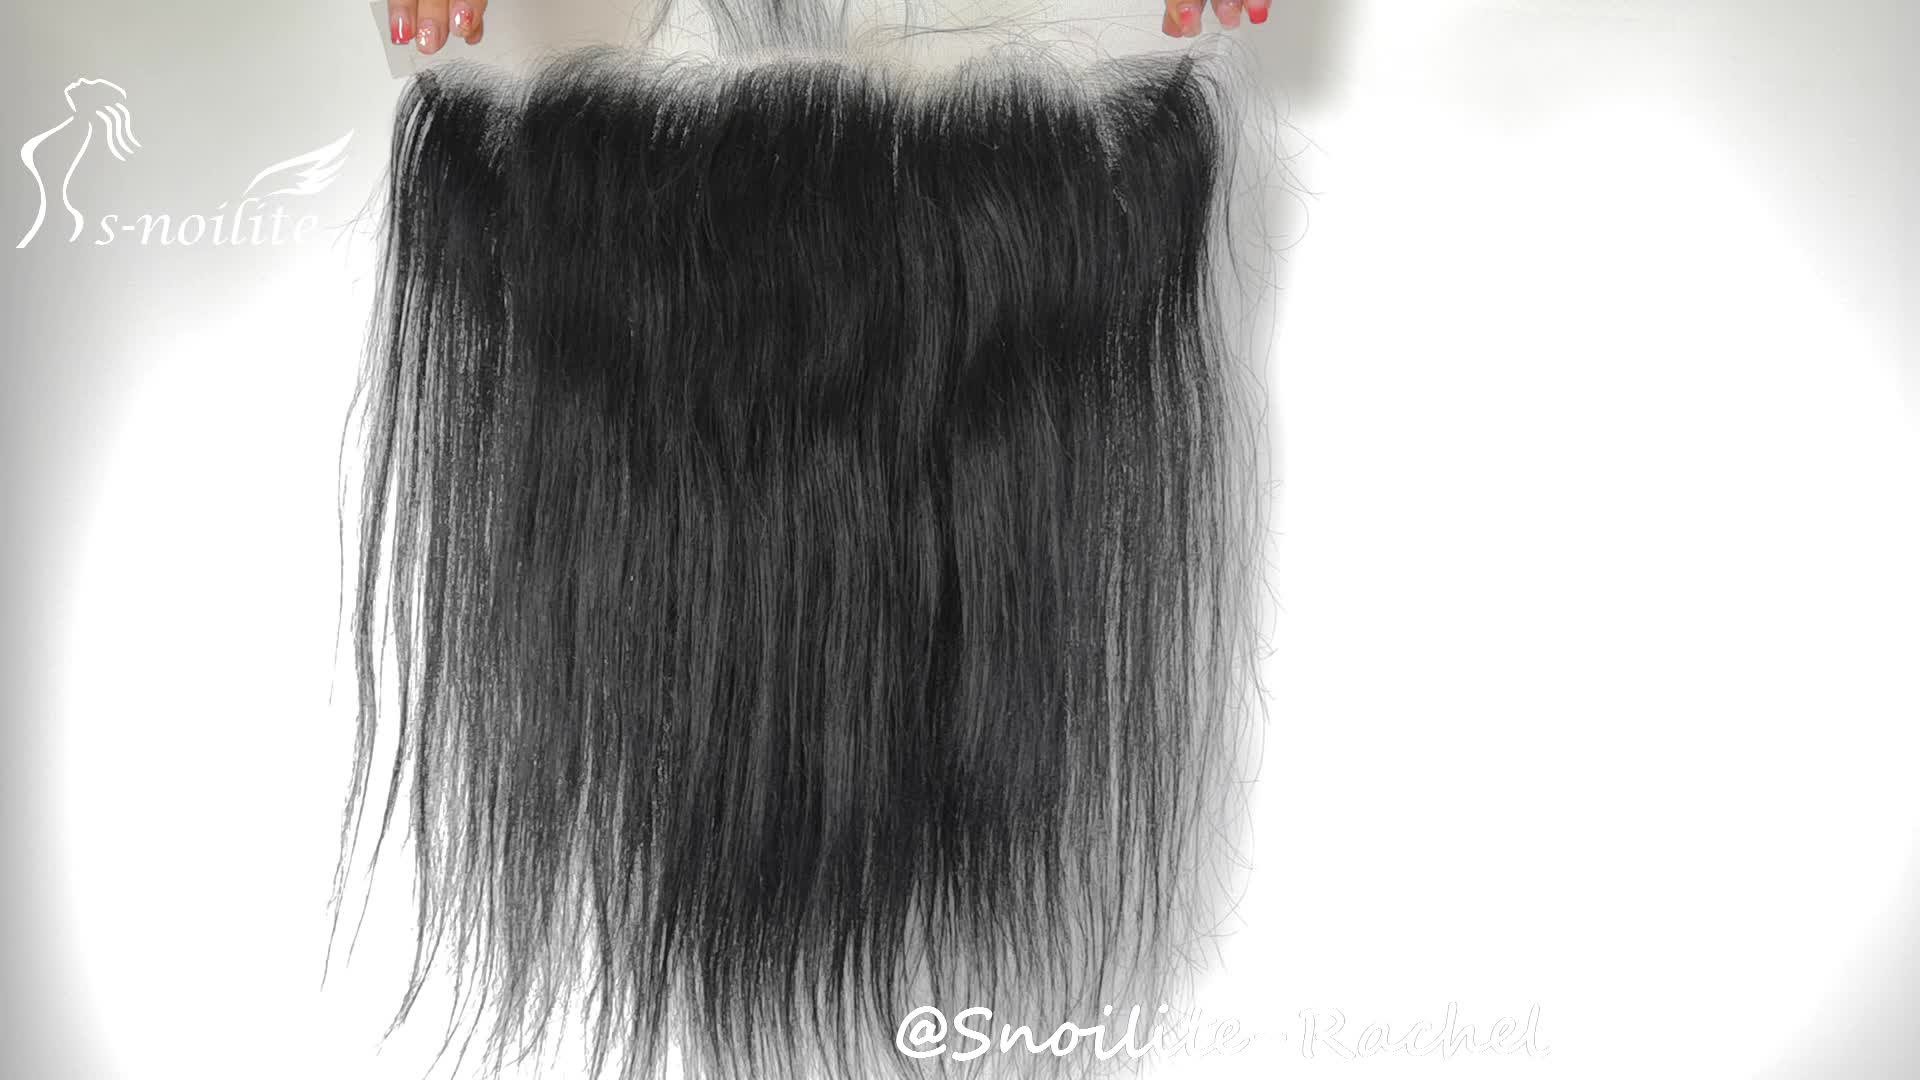 Raw Indian temple hair 100% Virgin hair Silky Straight transparent Swiss lace frontal 13x4